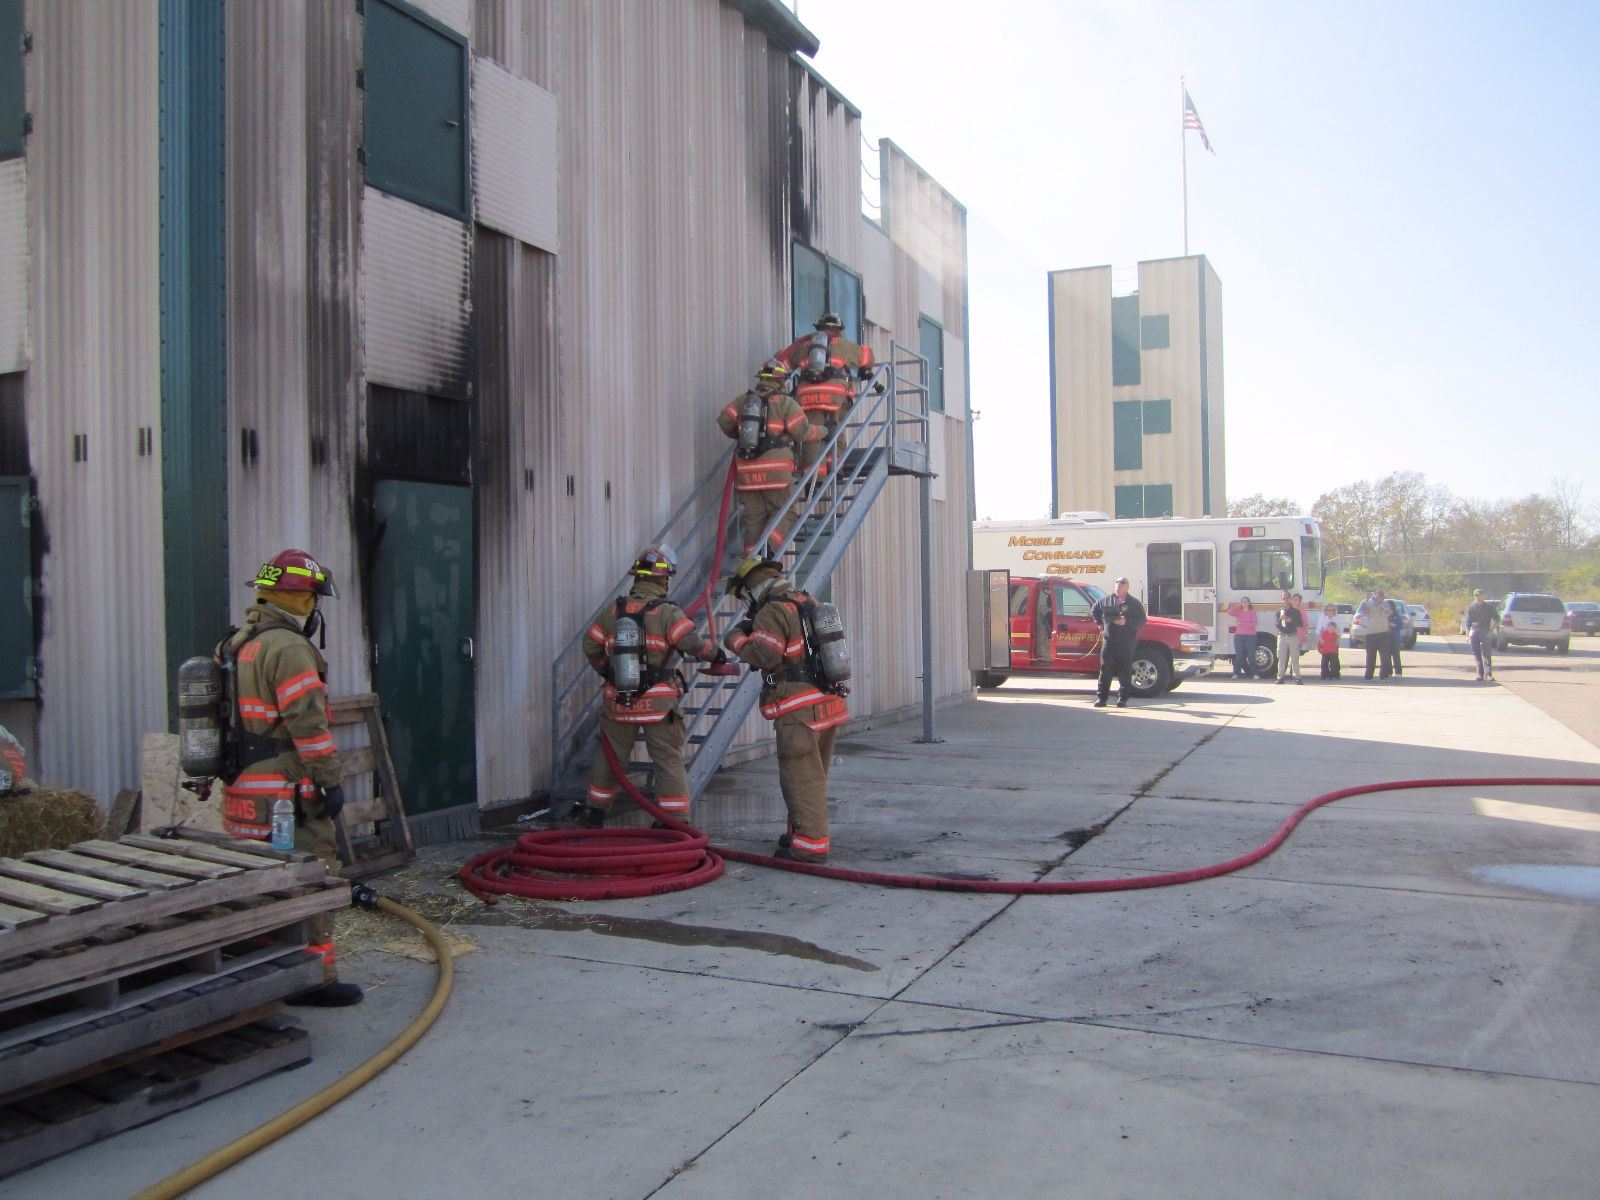 Firefighters at Burn Structure